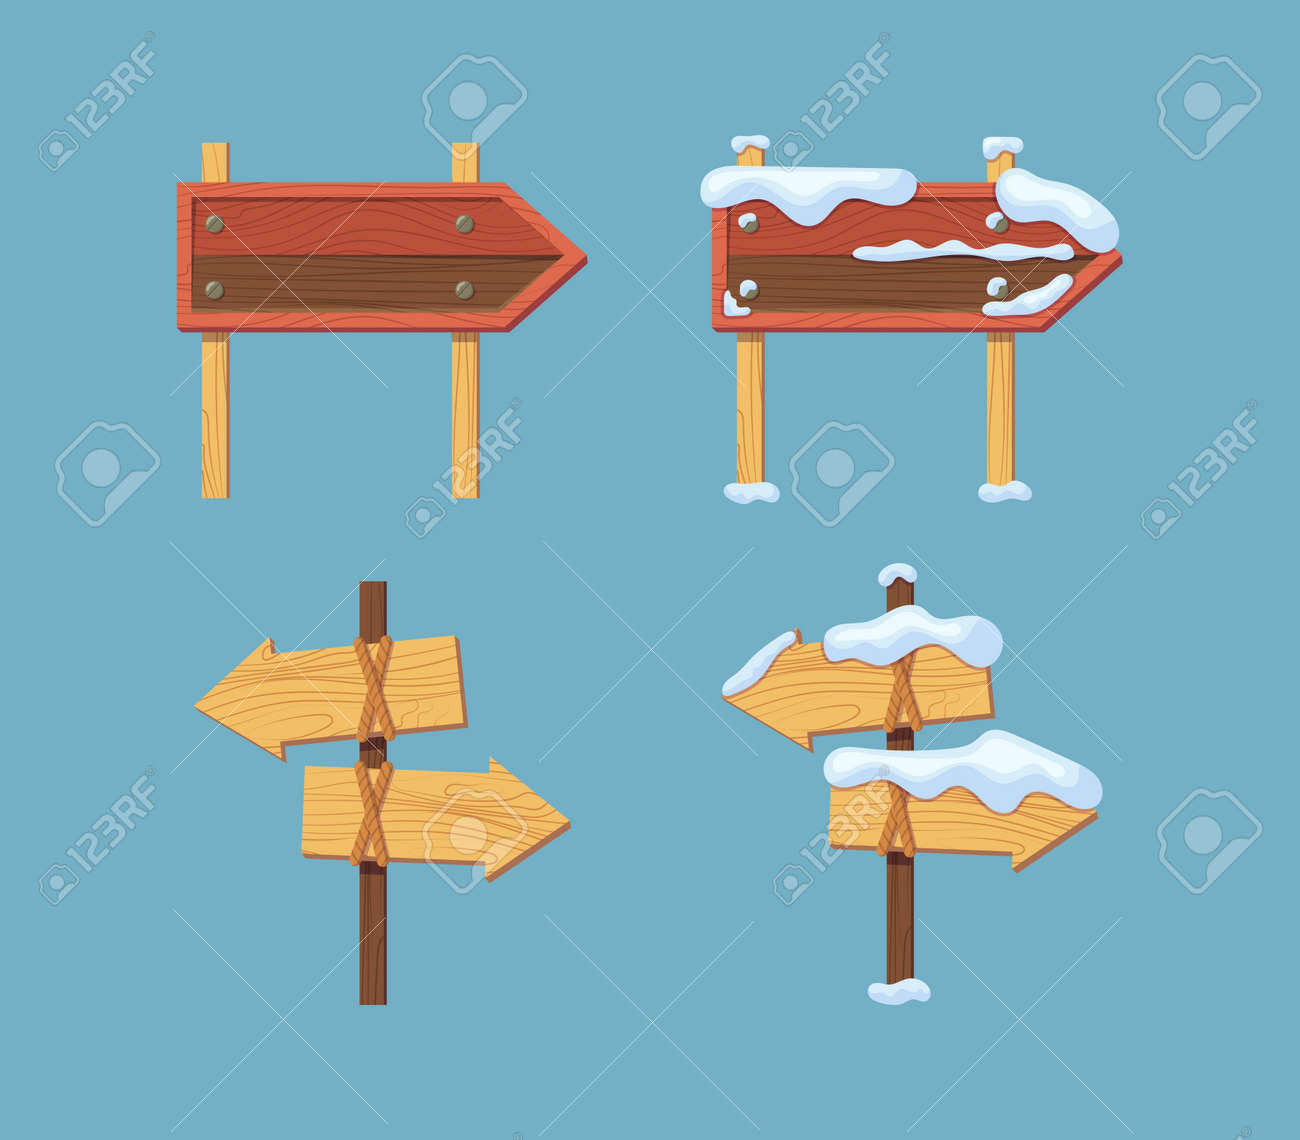 Wooden sign boards blank empty planks or signboards - 149817938